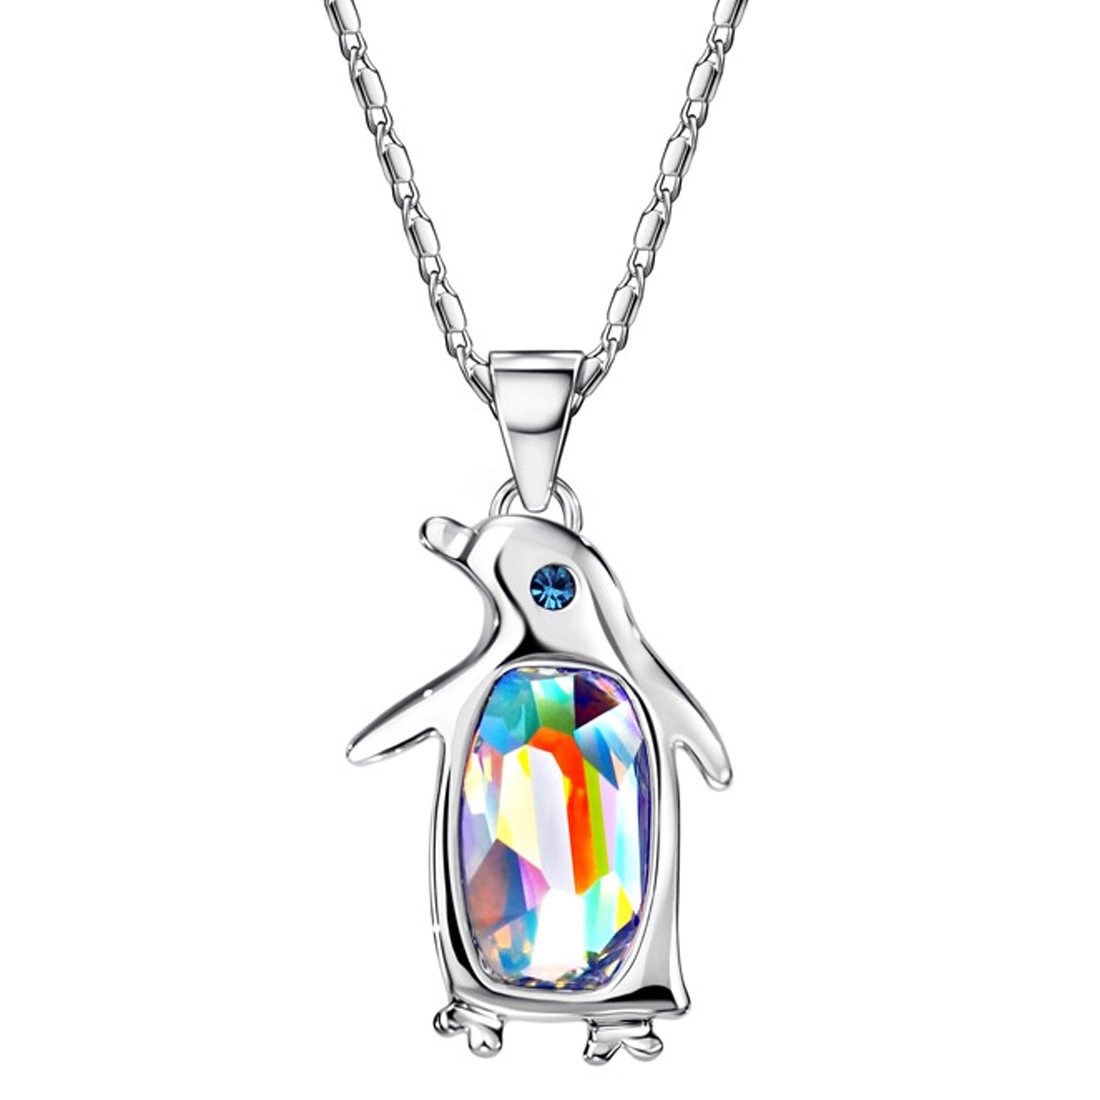 Neoglory Jewelry Aurora Borealis Crystal Penguin Birthstone Pendant Necklace Embellished with Crystals from Swarovski